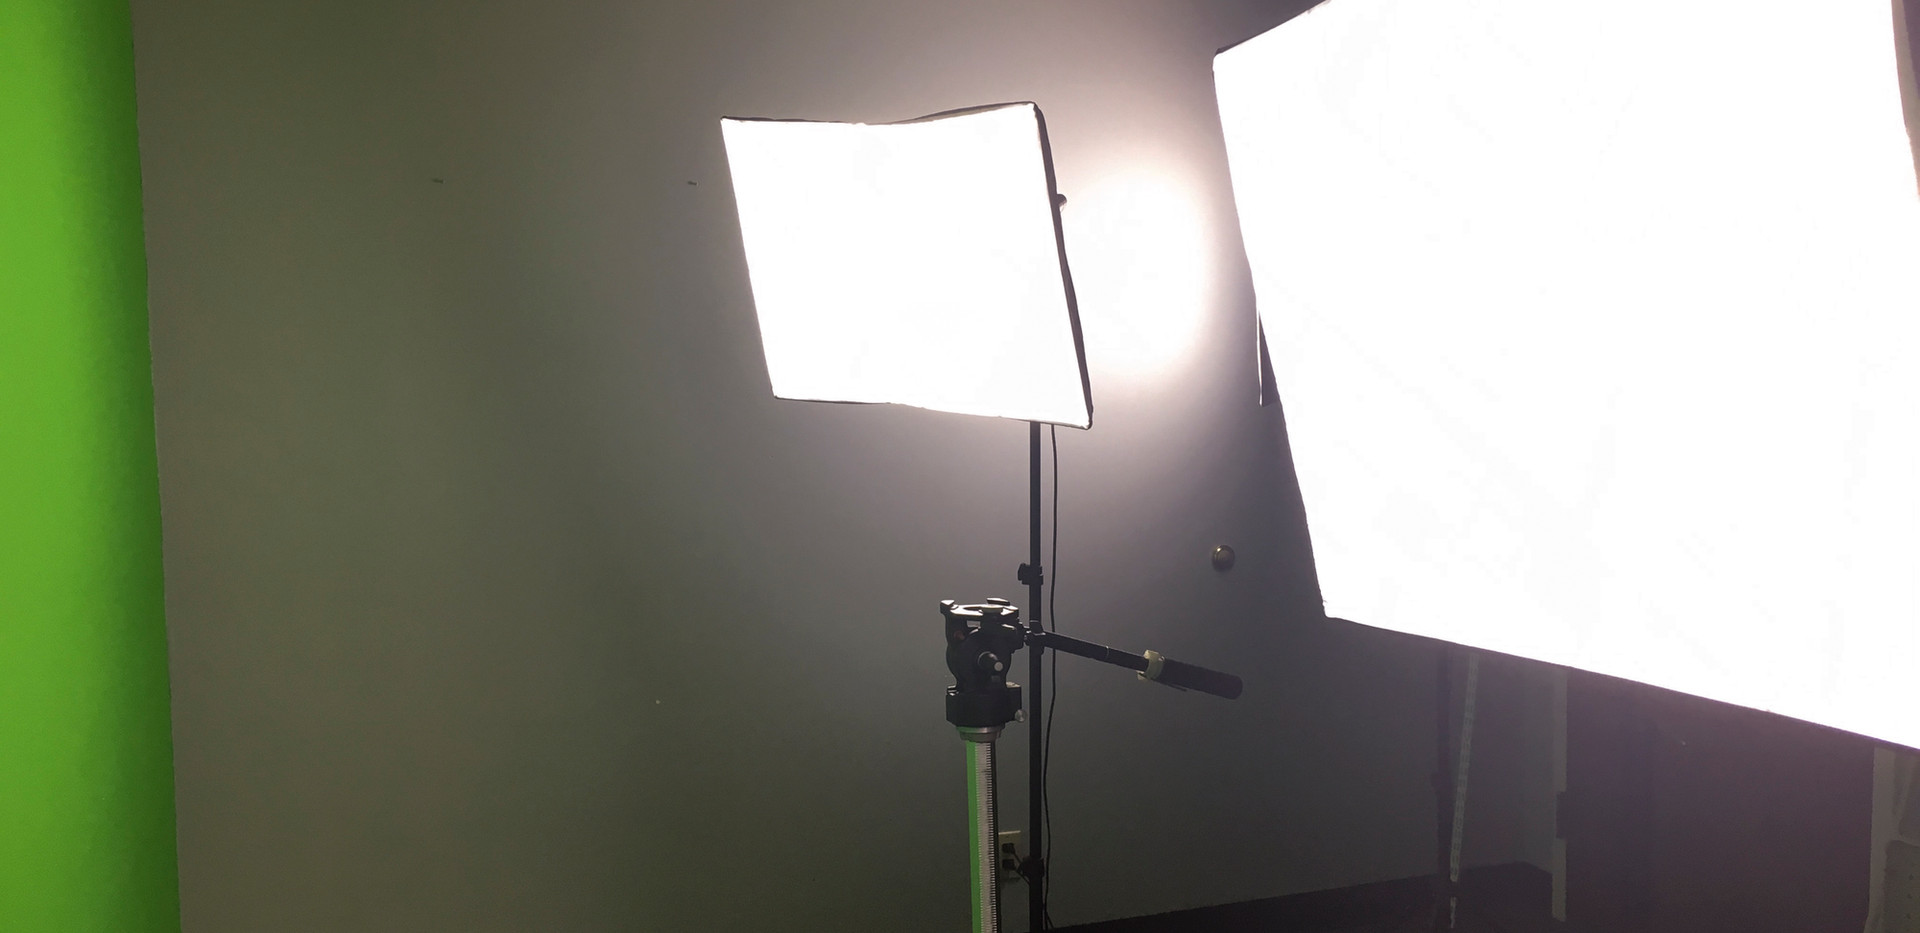 Green Screen Room01.jpg